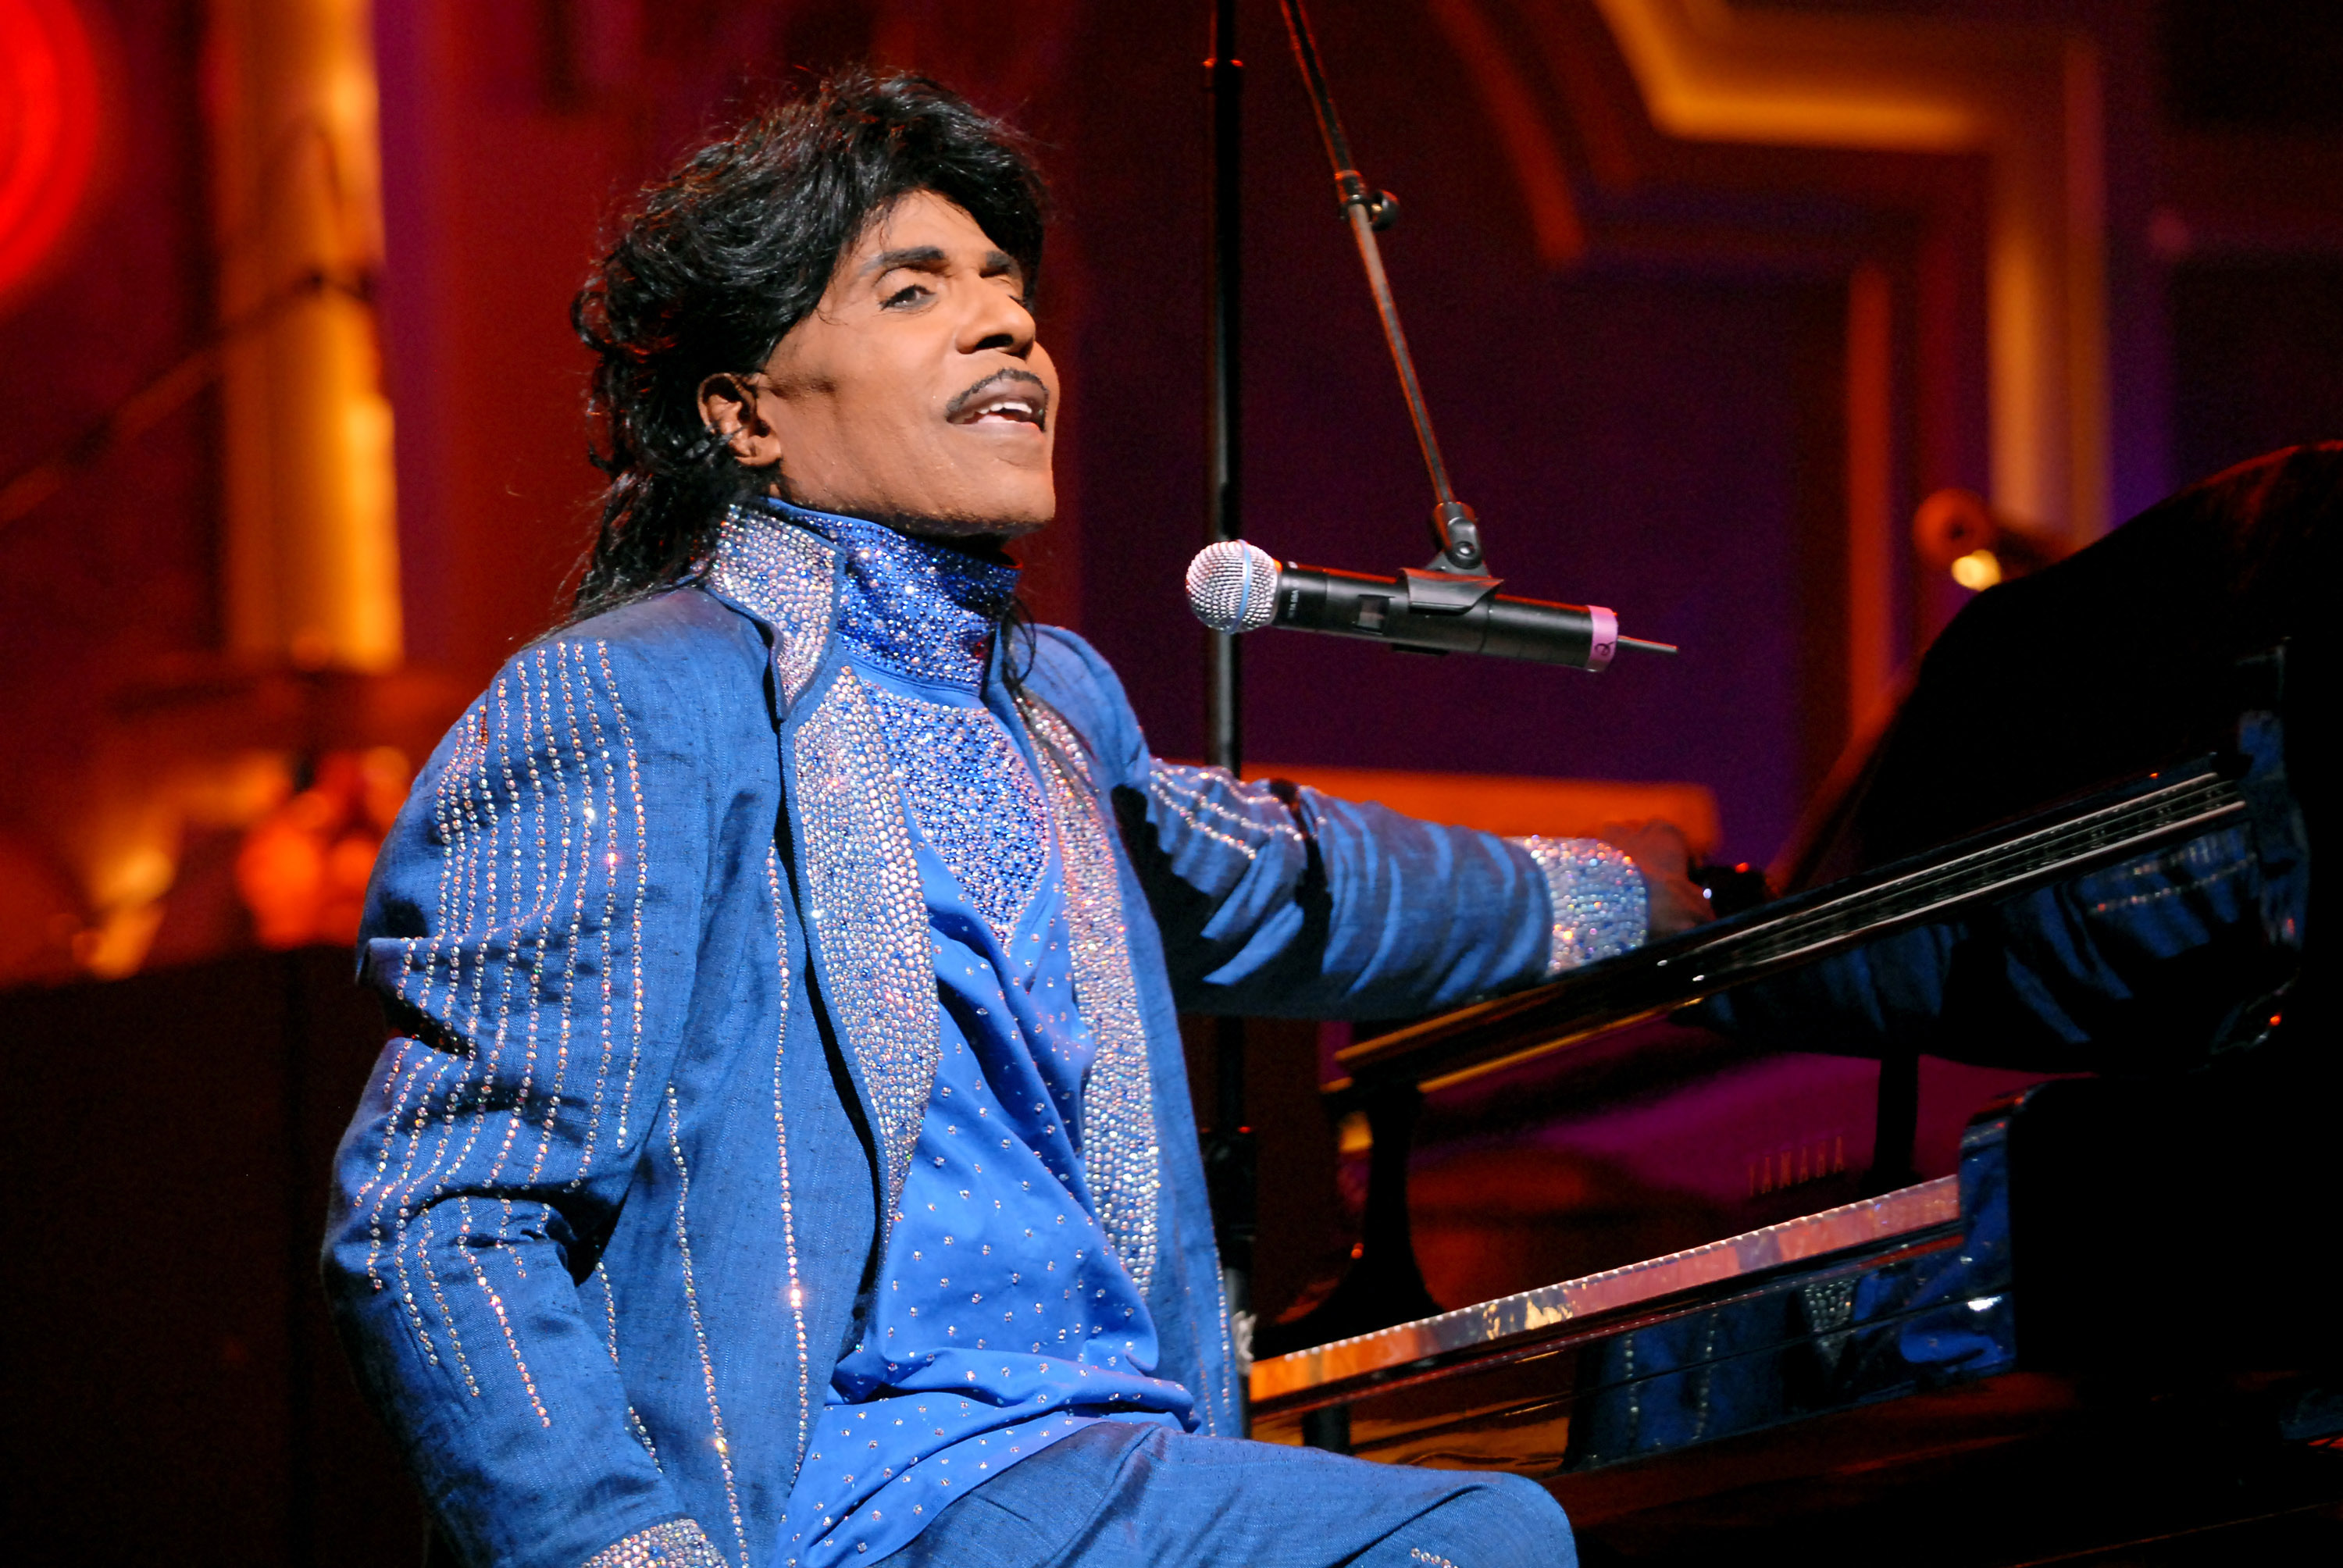 Little Richard denied near-death rumors in 2017 and asserted 'I'm Still Singing'. He has kept largely away from the spotlight, reportedly living in a penthouse suite at the Hilton in downtown Nashville after hip surgery